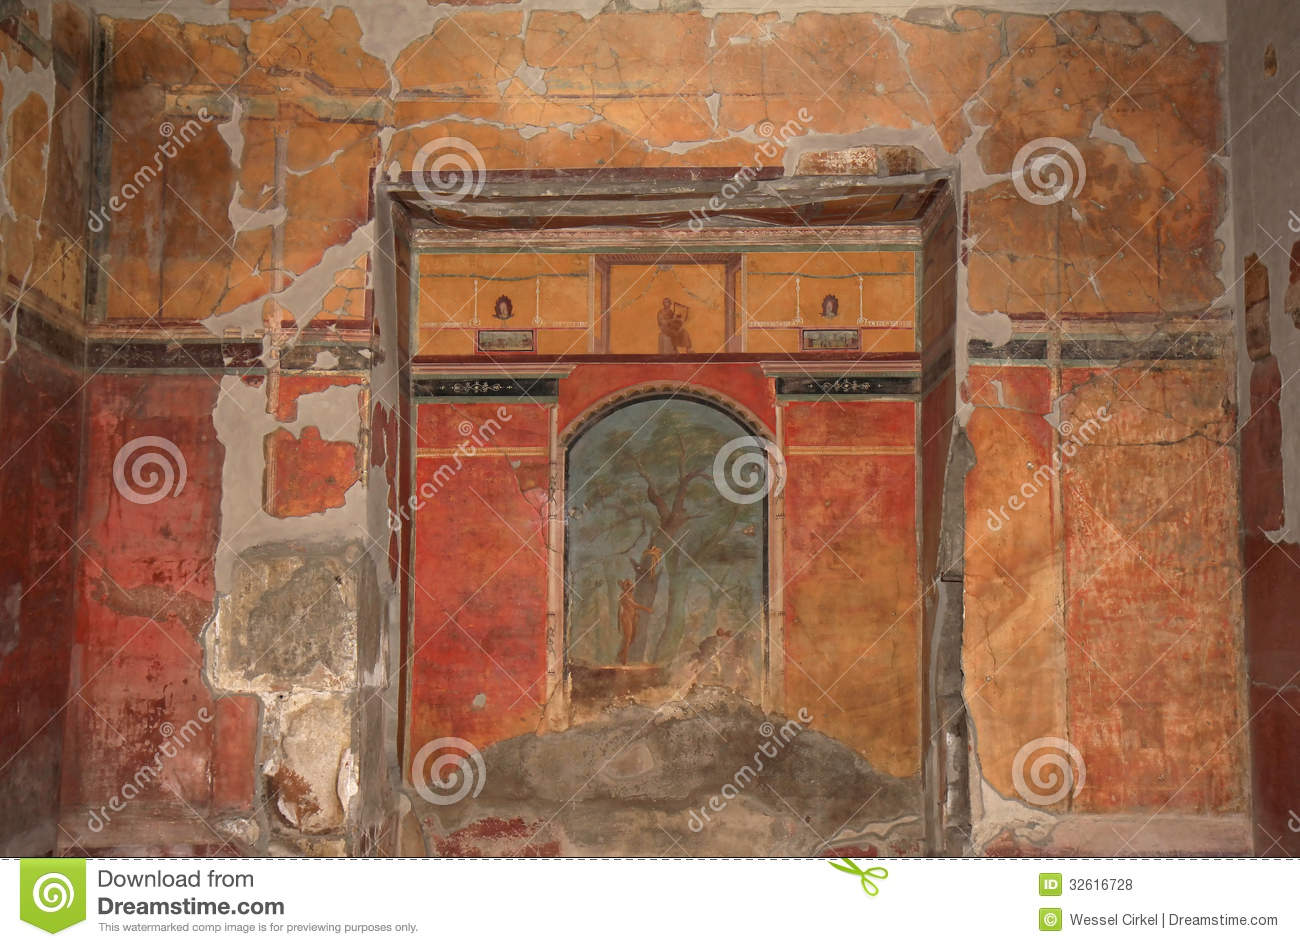 Mural in the roman villa poppaea italy royalty free stock for Ancient mural villa